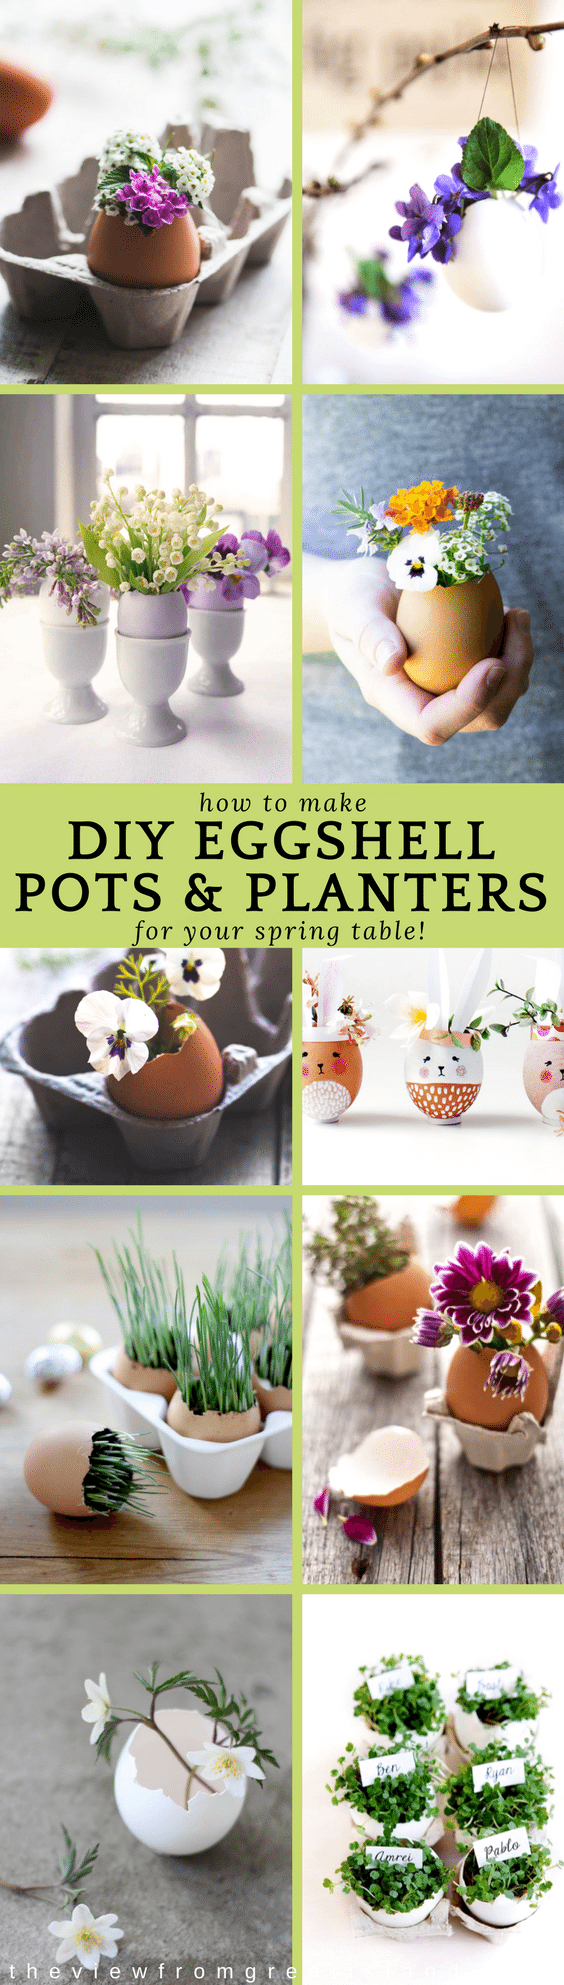 Simple eggshells can be used to make the most enchanting floral arrangements for Easter and springtime entertaining. #eggshells #eggcrafts #eggshellcrafts #easter #eastercraft #tablescape #Easterdecorating #flowers #hangingplanters #seedstarter #succulents #eggshellvases #eggshellplanters